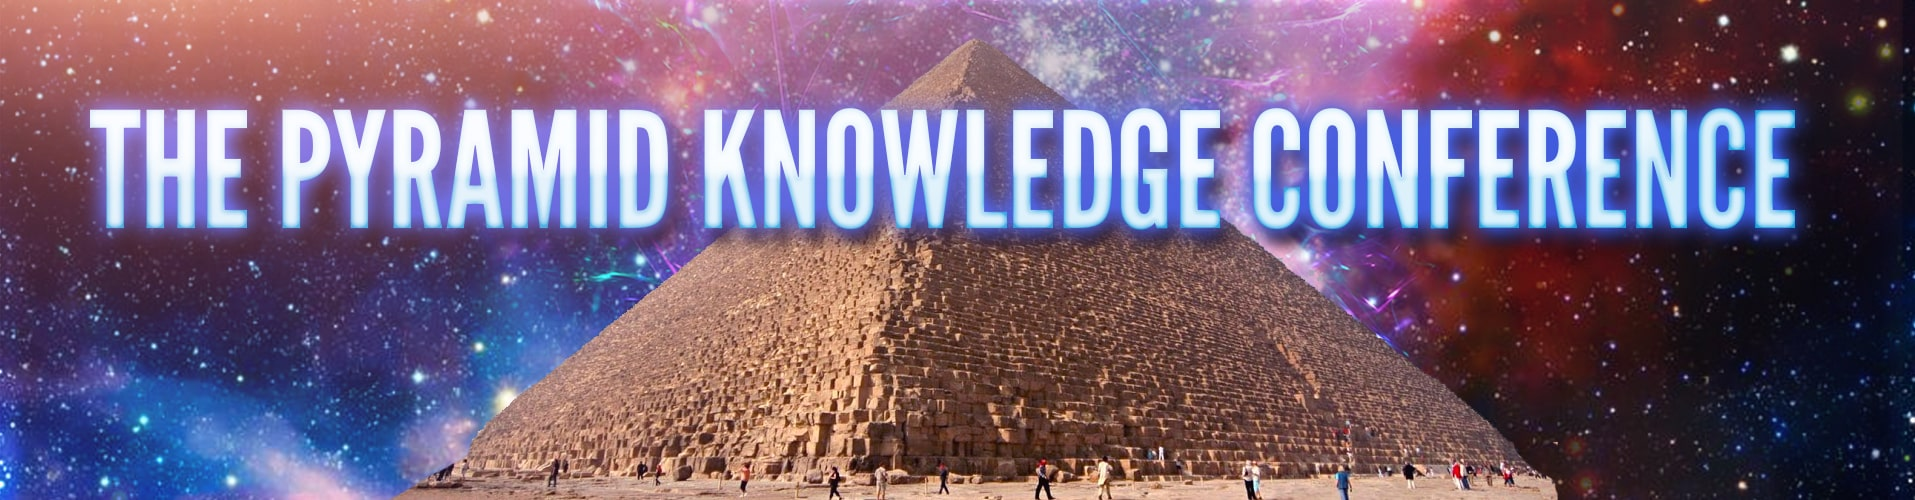 The Pyramid Knowledge Conference